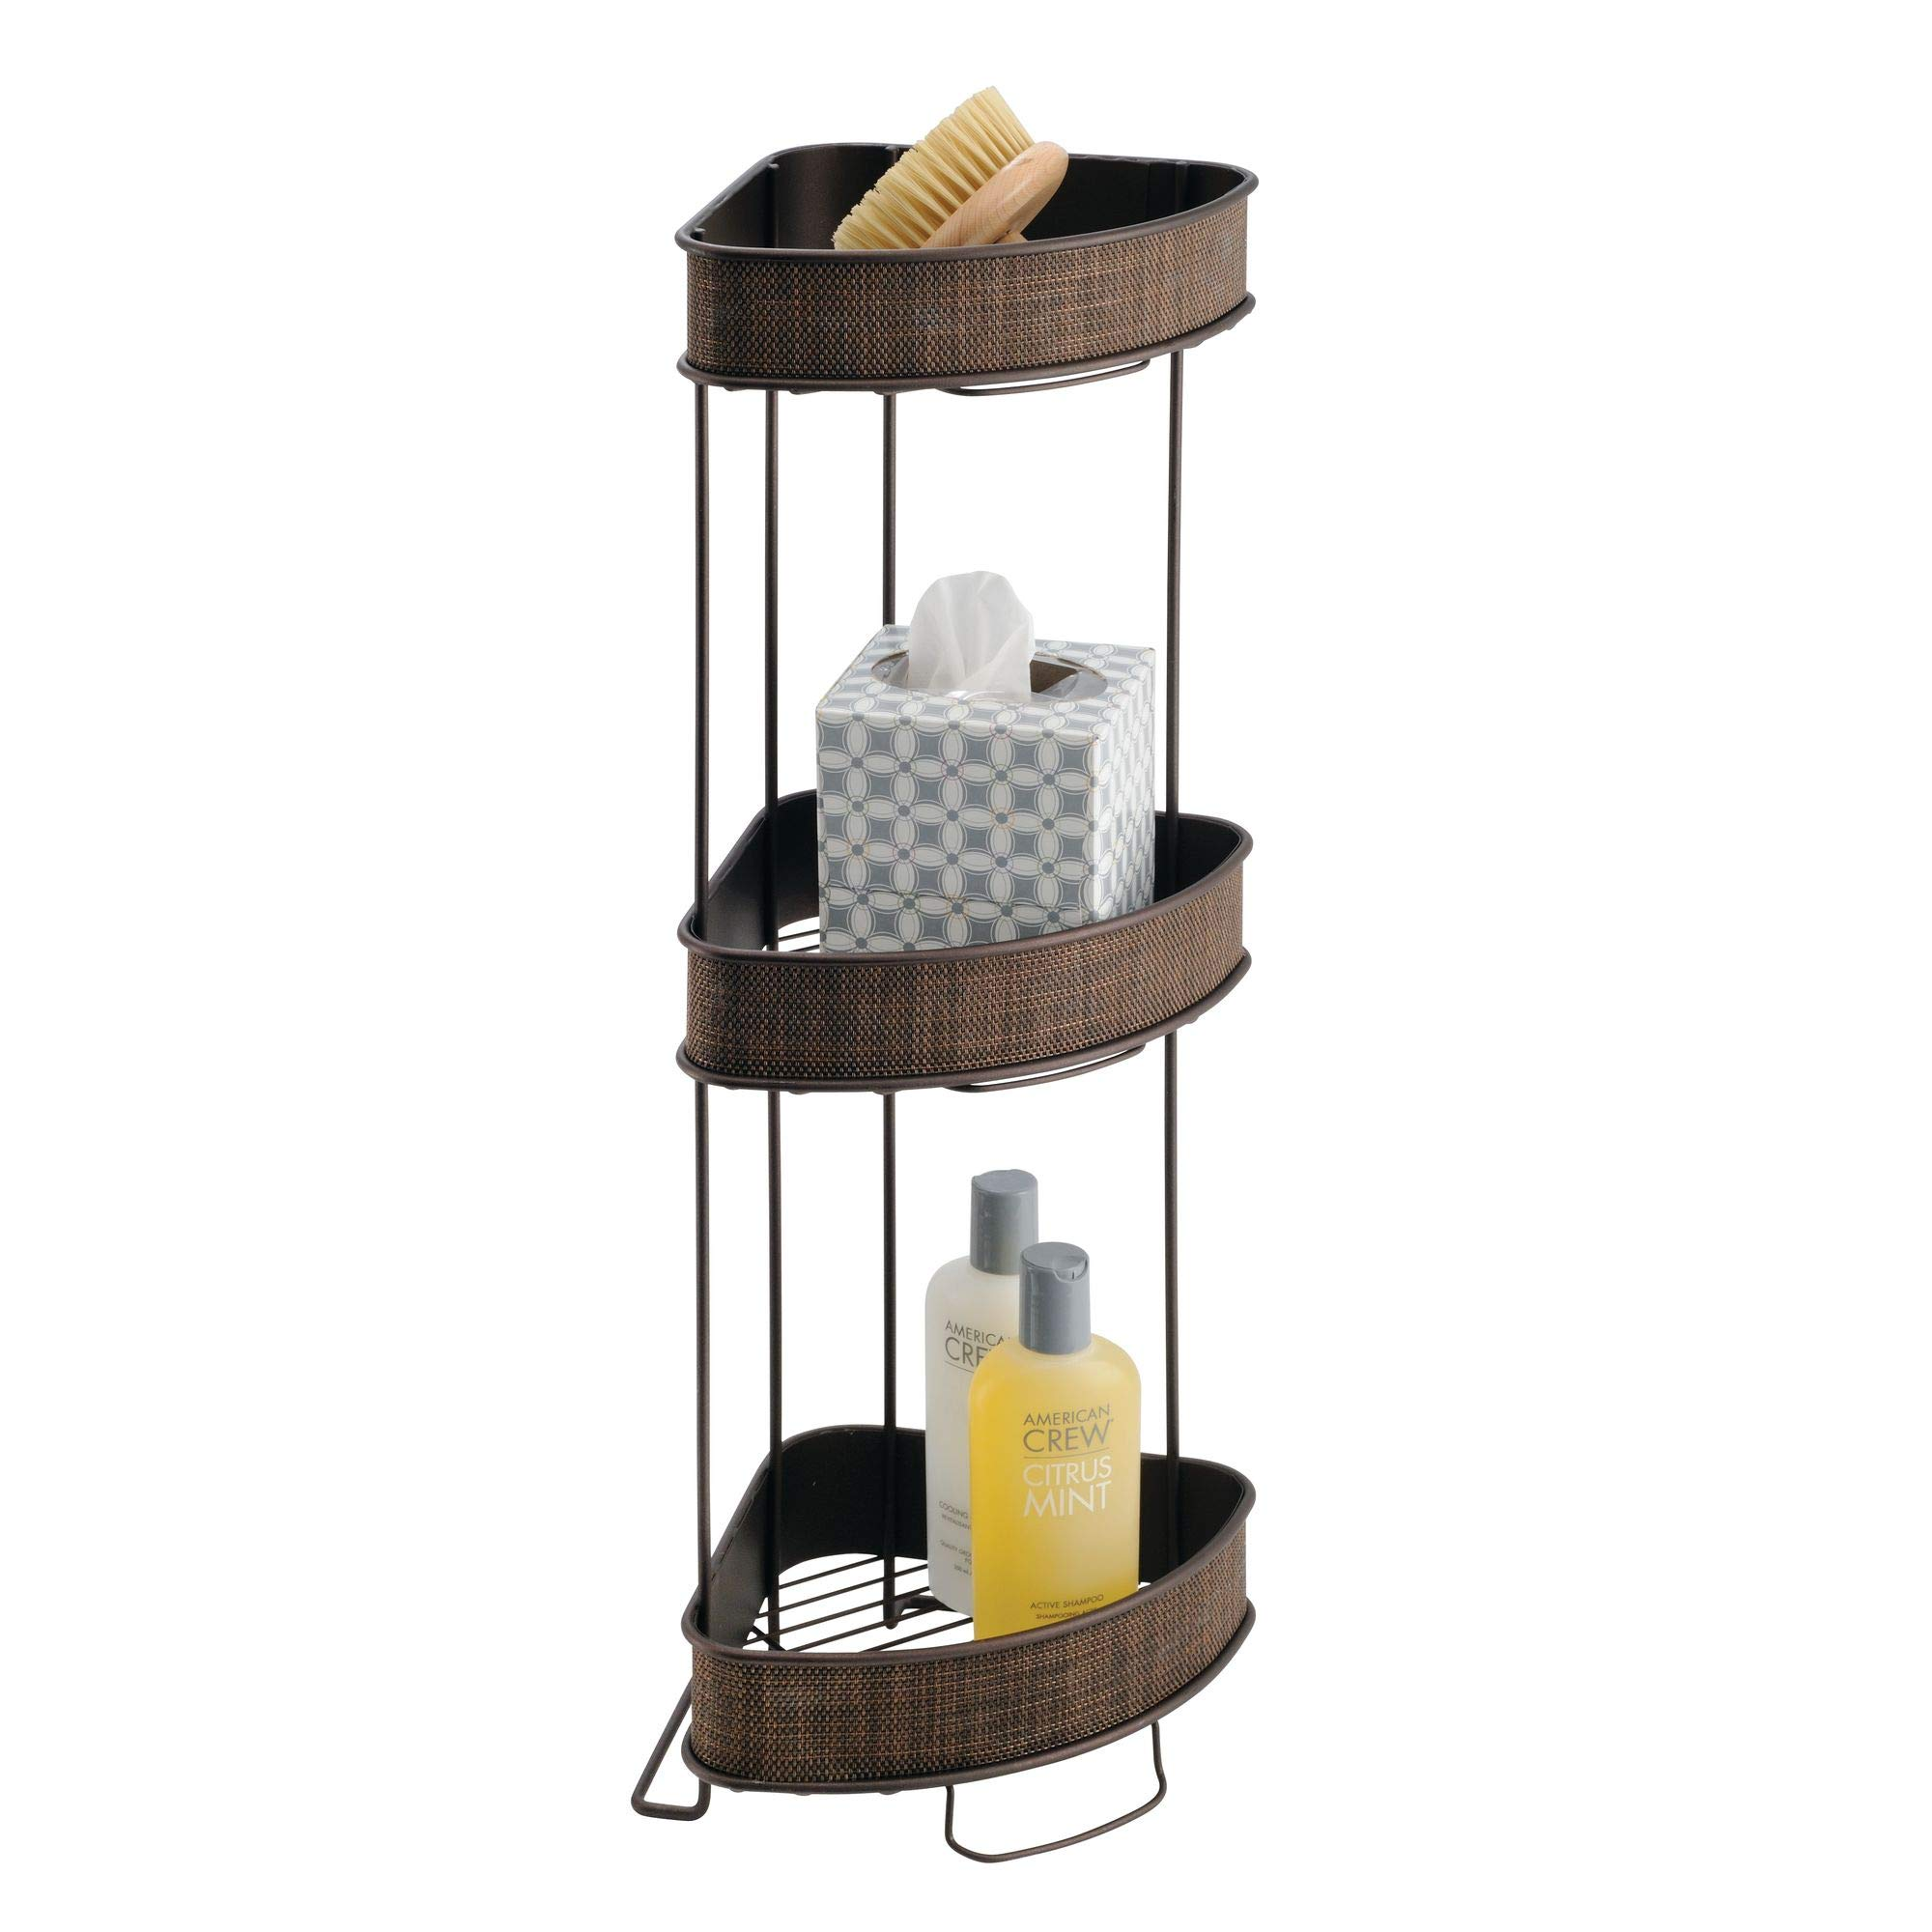 iDesign Twillo Metal Wire Corner Standing Shower Caddy 3-Tier Bath Shelf Baskets for Towels, Soap, Shampoo, Lotion, Accessories, Bronze by iDesign